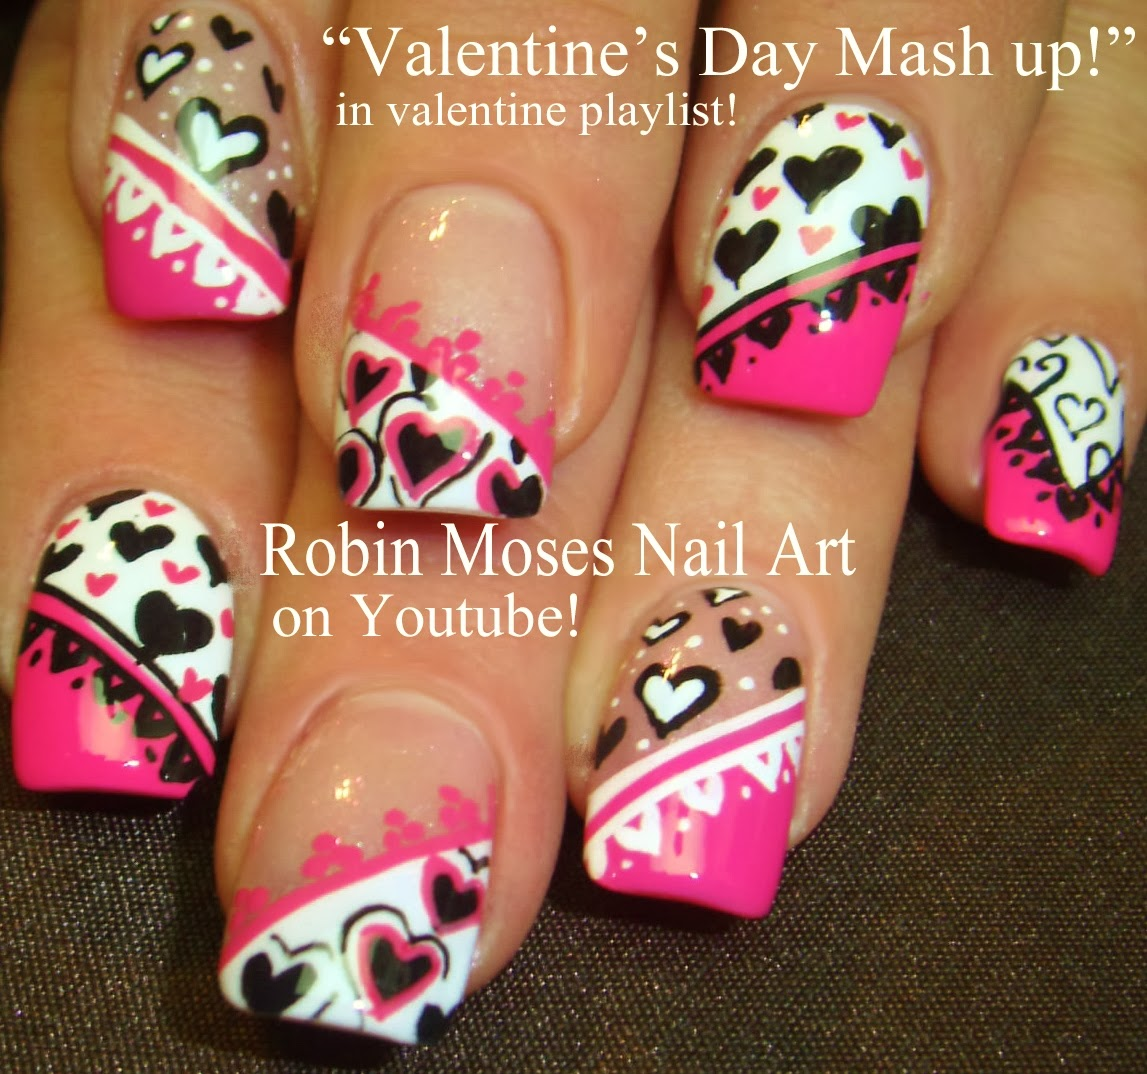 Robin moses nail art valentines day nails nail art for valentines day nails nail art for valentines day valentine ideas cute valentine nails pink and white hearts pink and black hearts valentine prinsesfo Choice Image